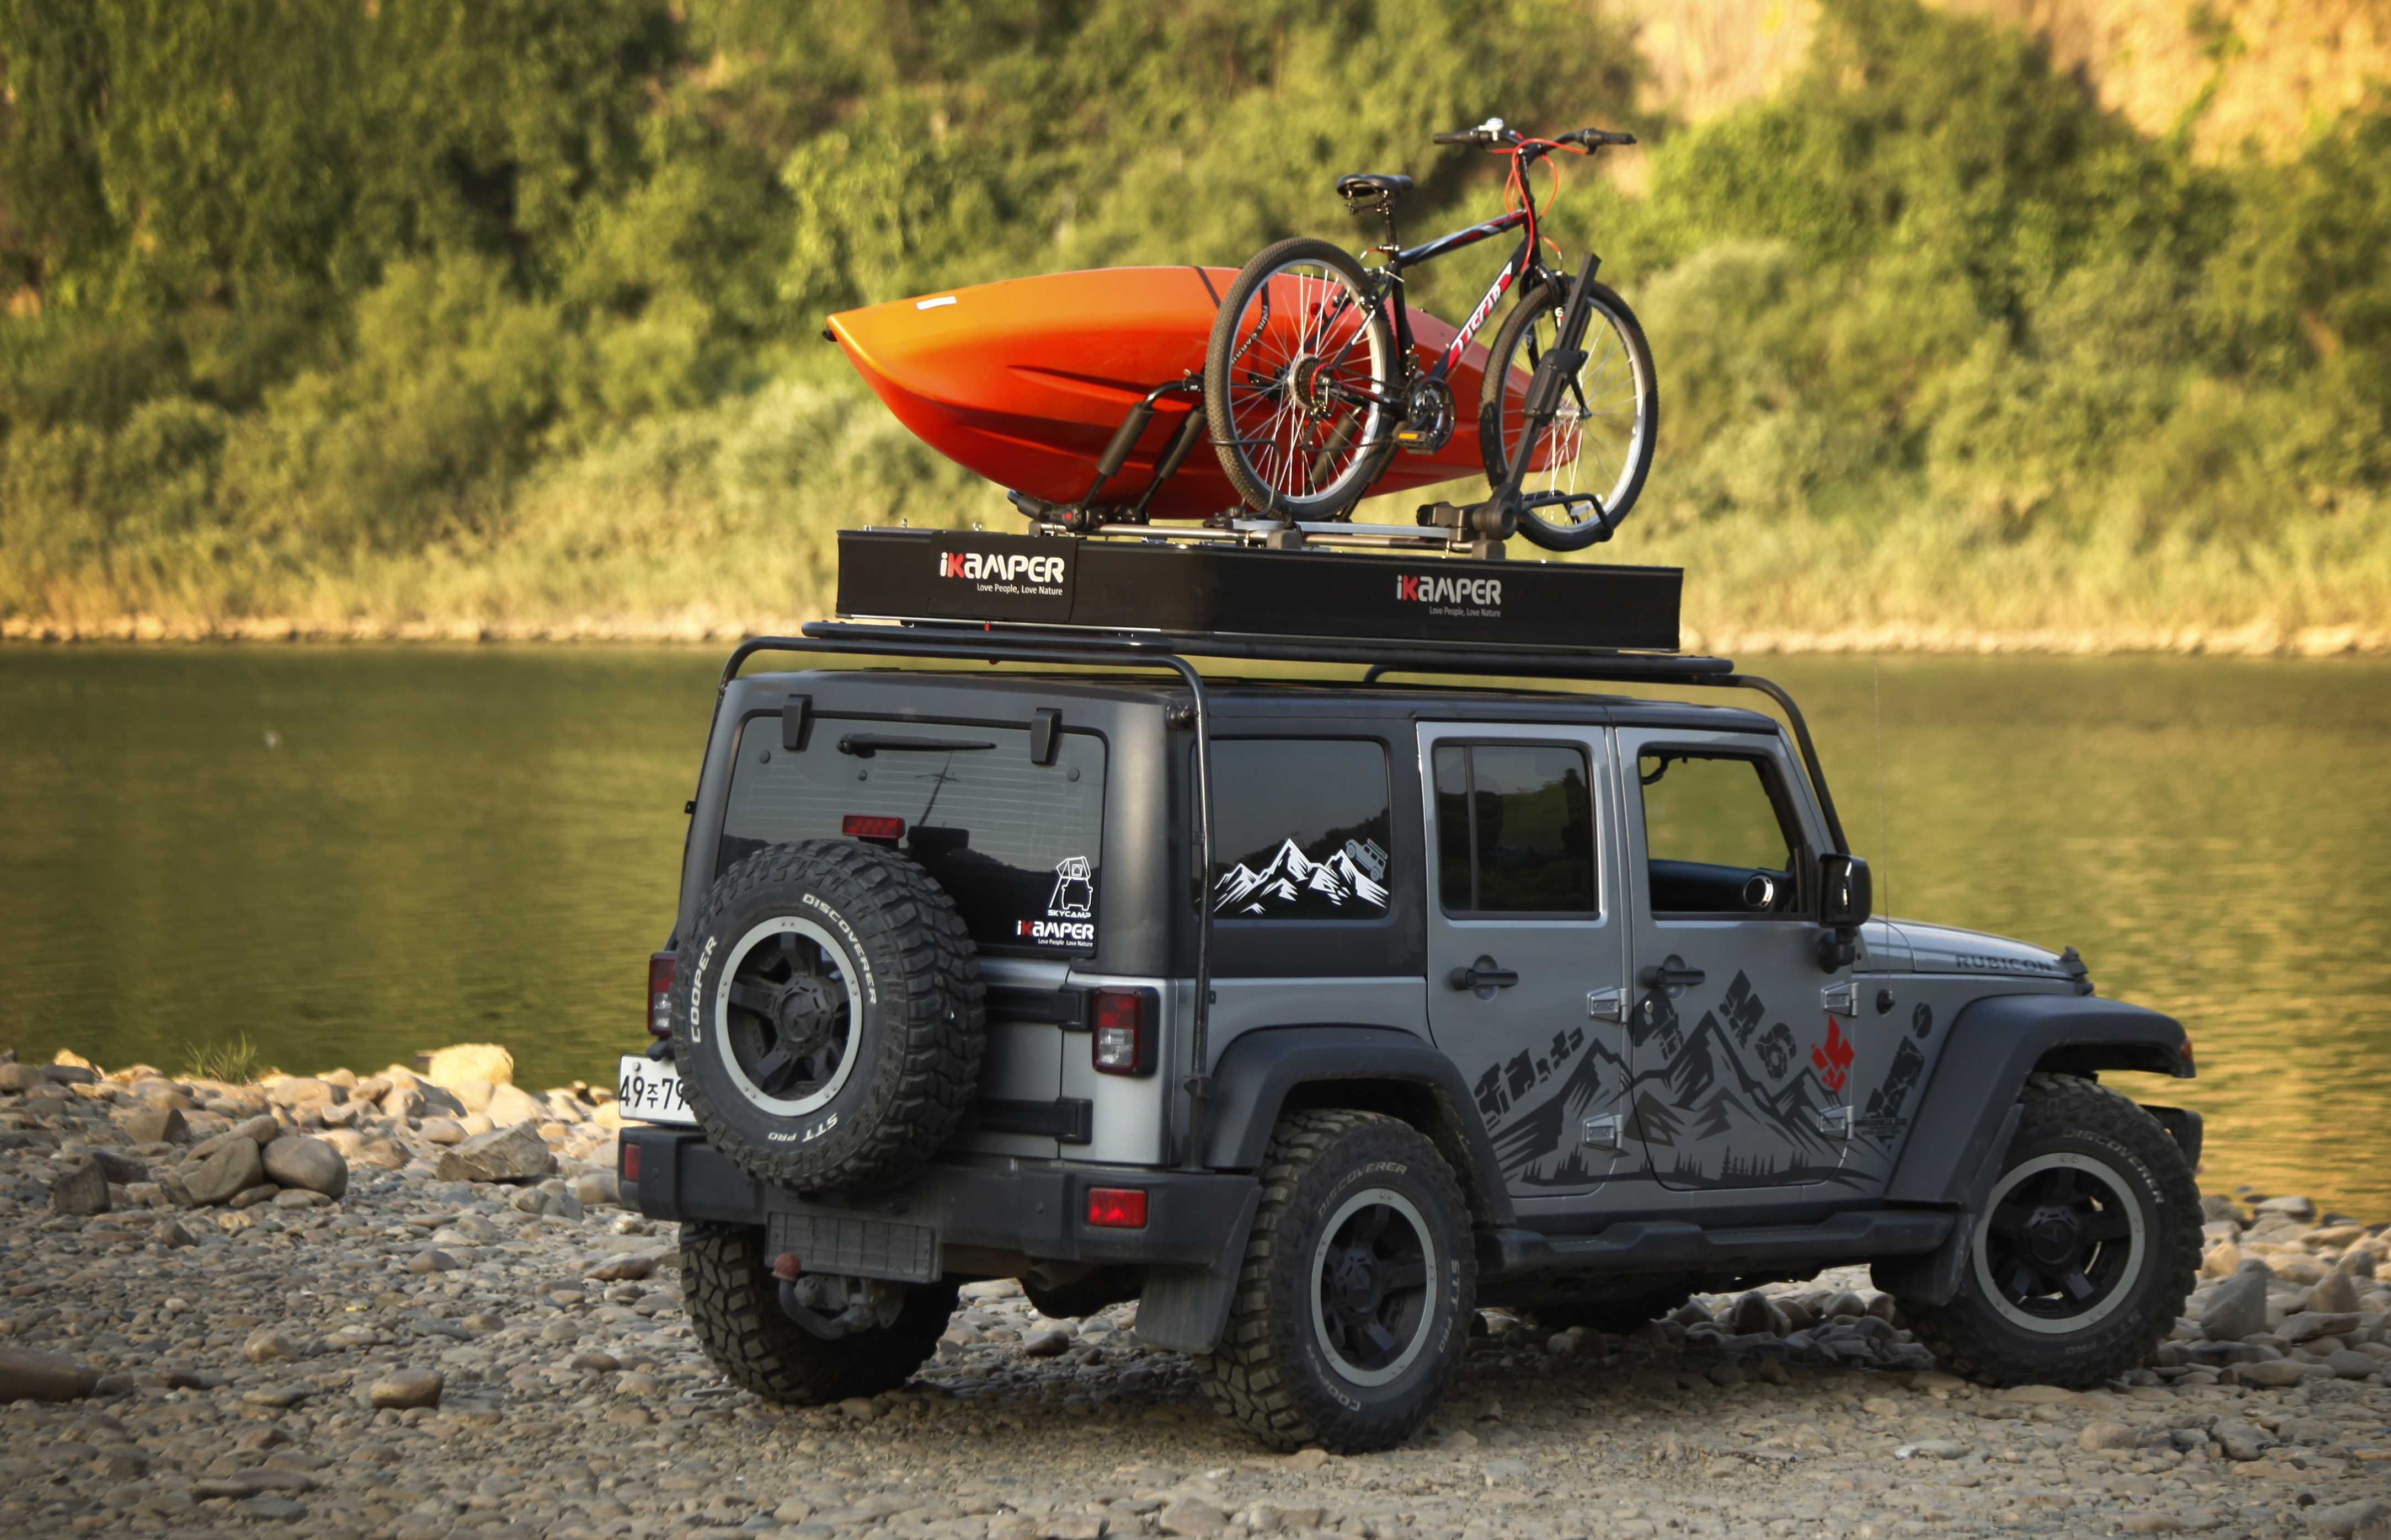 Outdoor Retailer Overlanding: 2018 Tools for All-Terrain